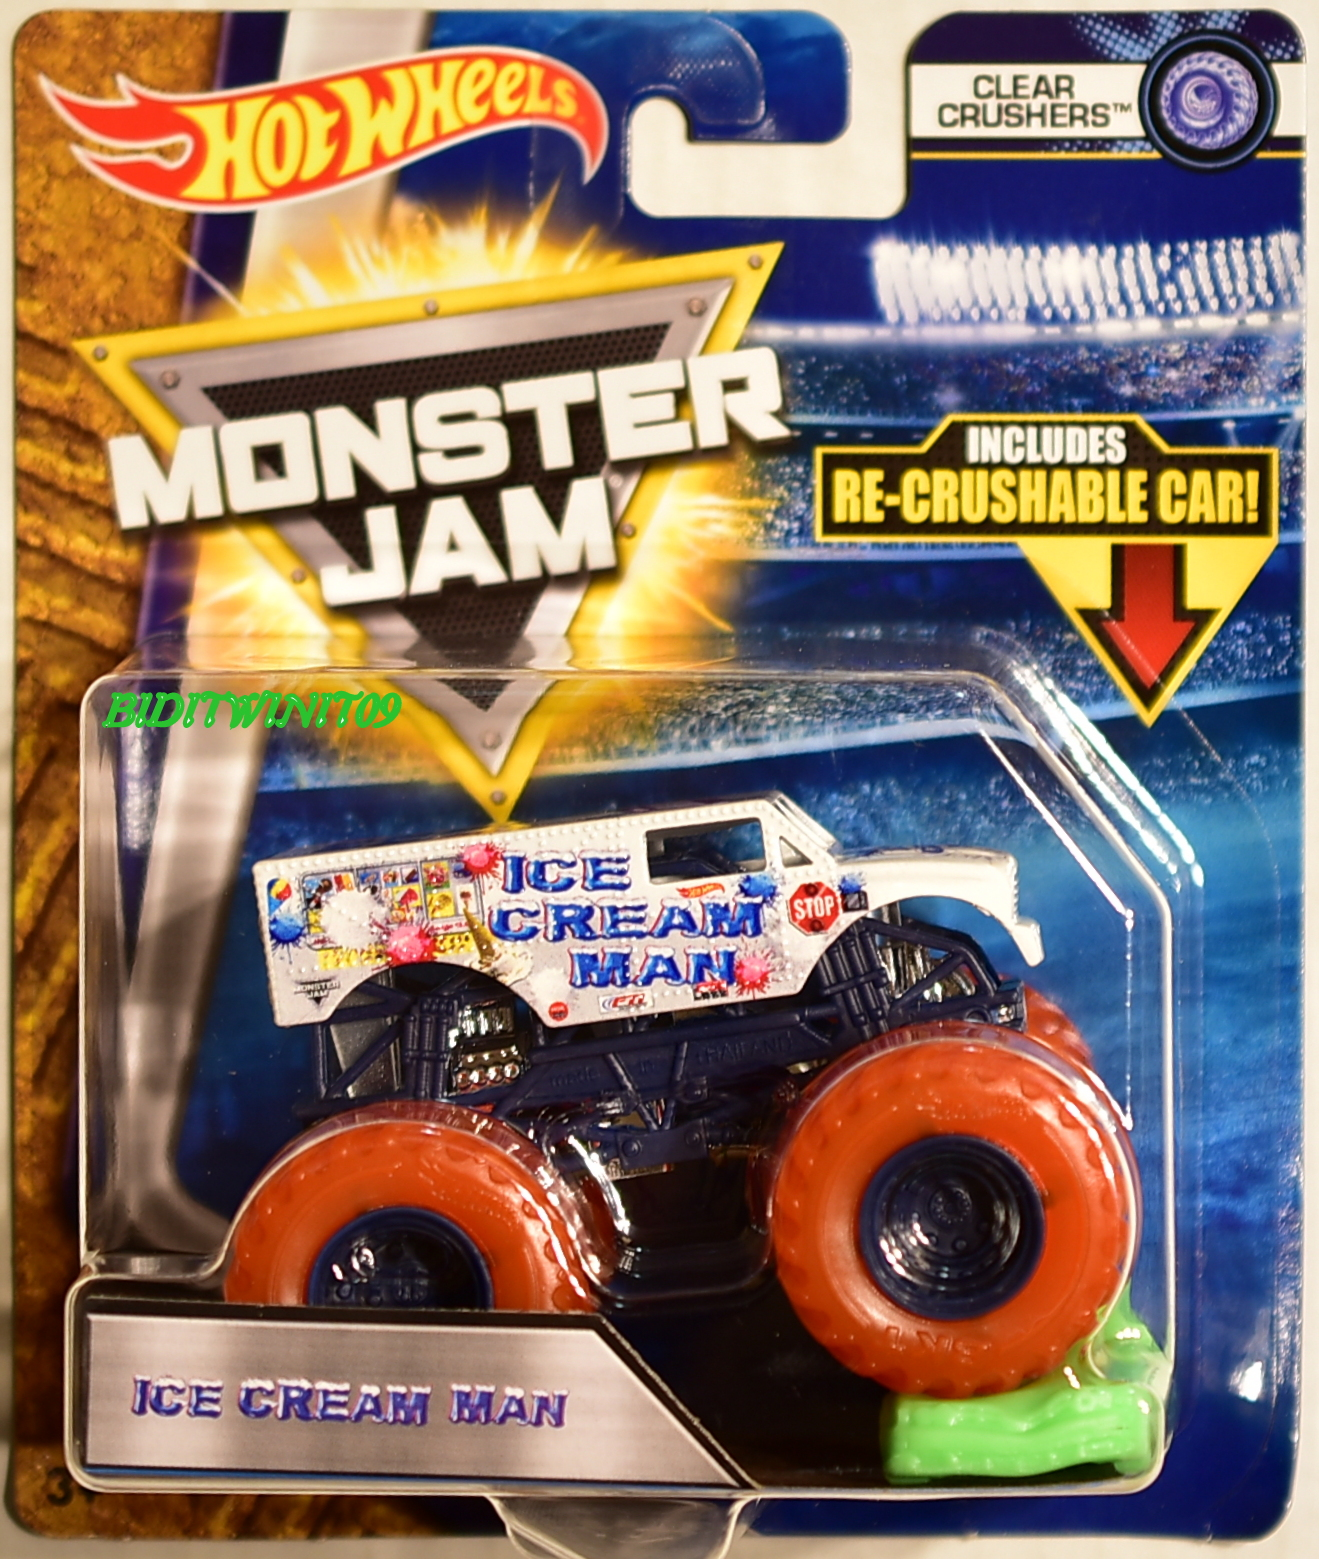 HOT WHEELS 2018 MONSTER JAM CLEAR CRUSHERS ICE CREAM MAN